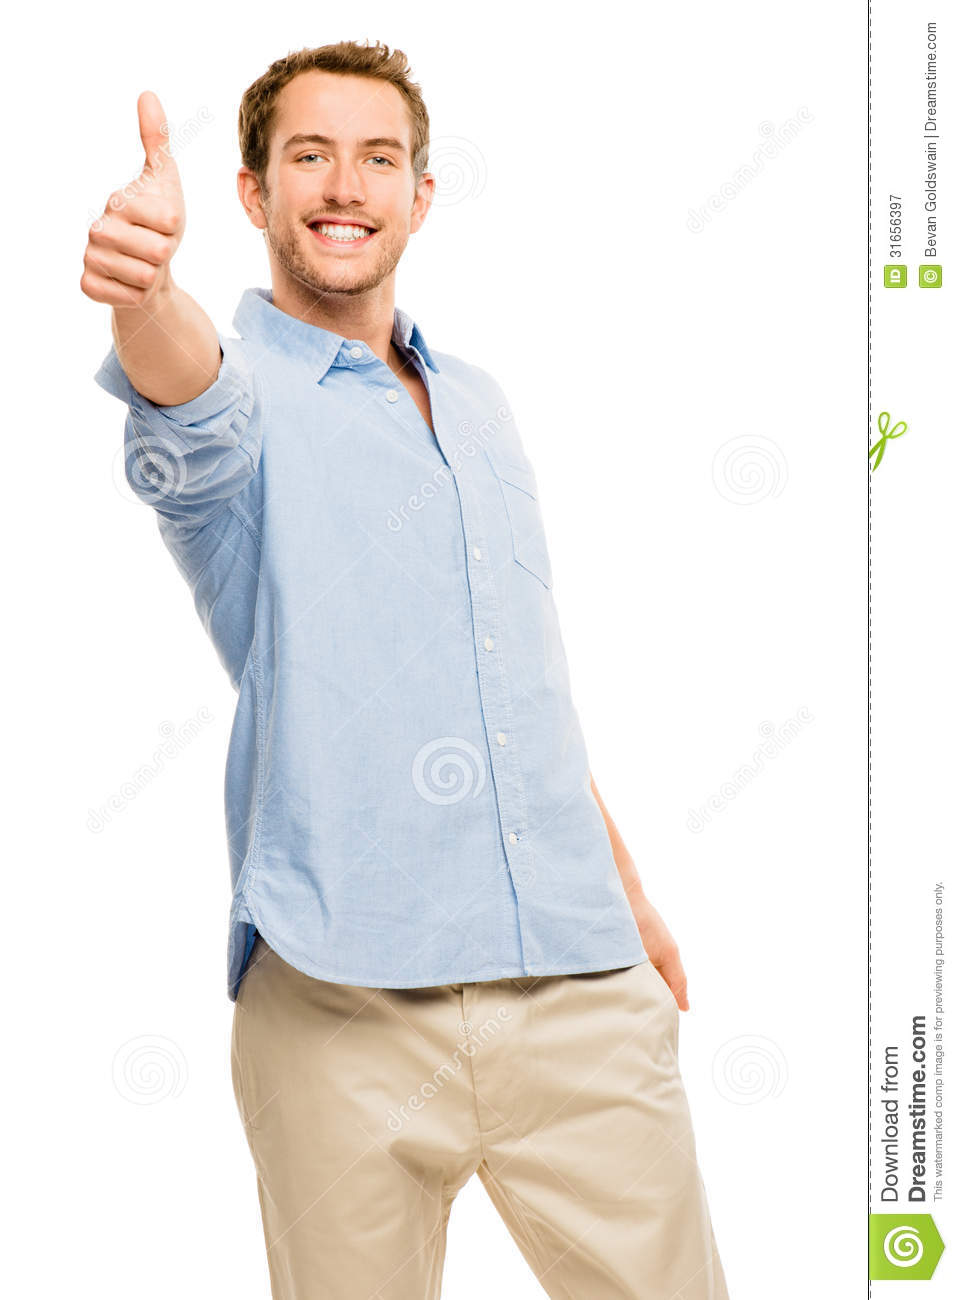 happy-man-thumbs-up-isolated-white-backg